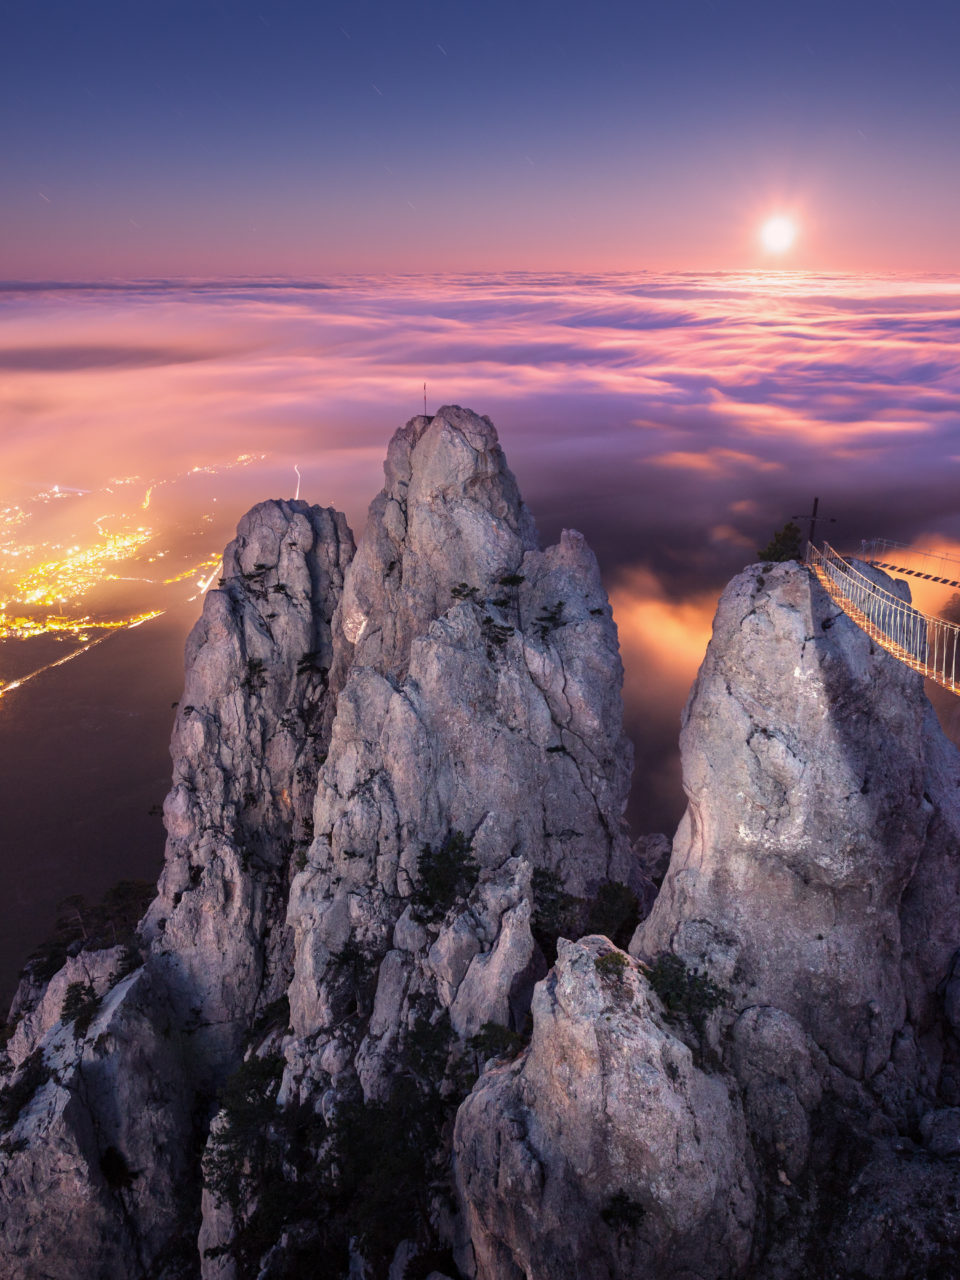 https://www.planetavenue.com/wp-content/uploads/2019/02/mountain-landscape-with-rising-full-moon-at-night-PT76UEQ-960x1280.jpg